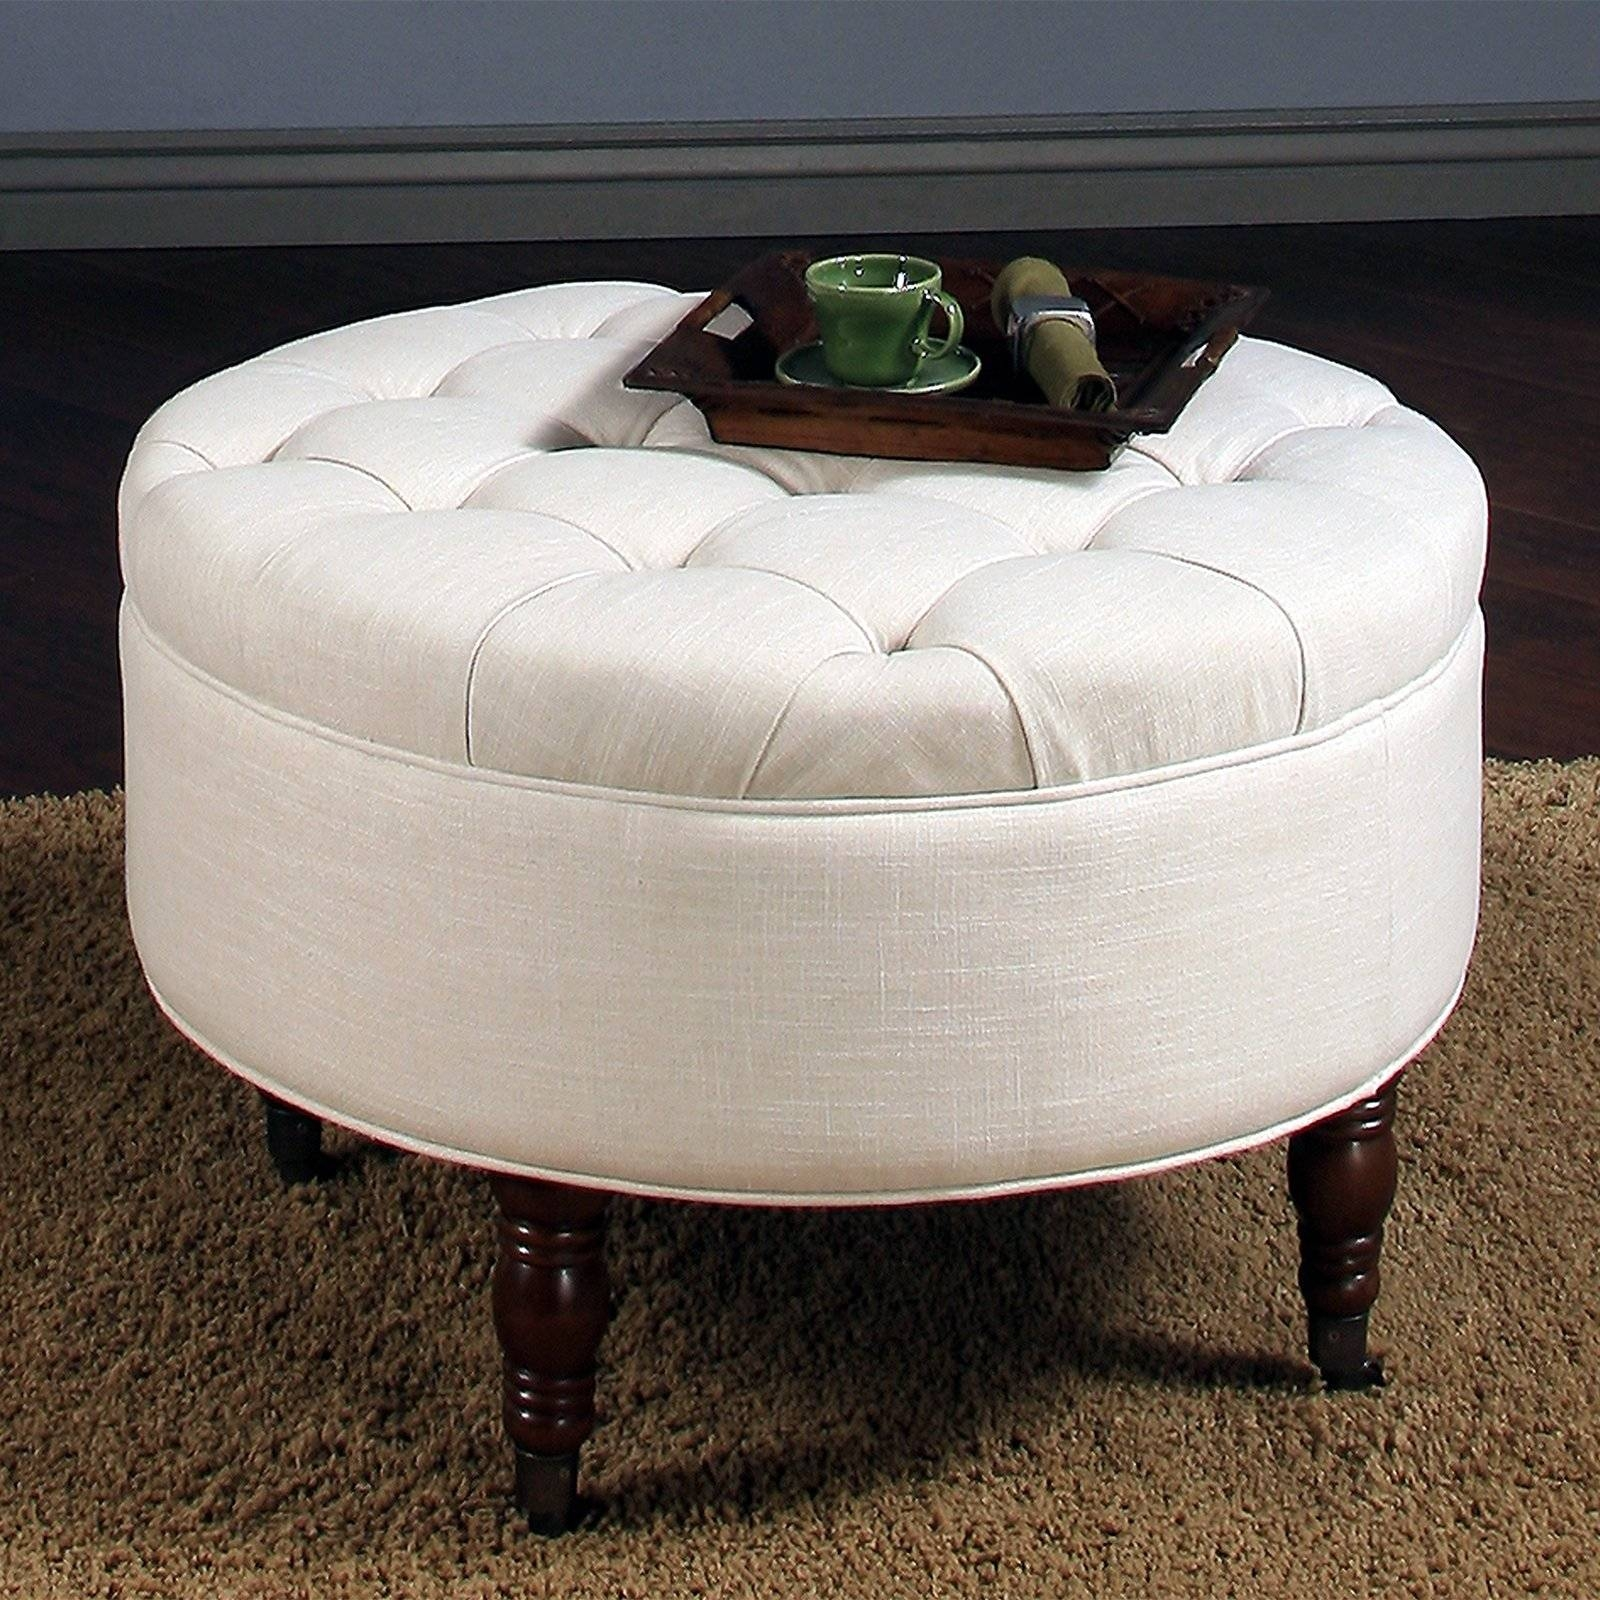 Brown Leather Coffee Table Ottoman 30 Inspirations Of Round Upholstered Coffee Tables